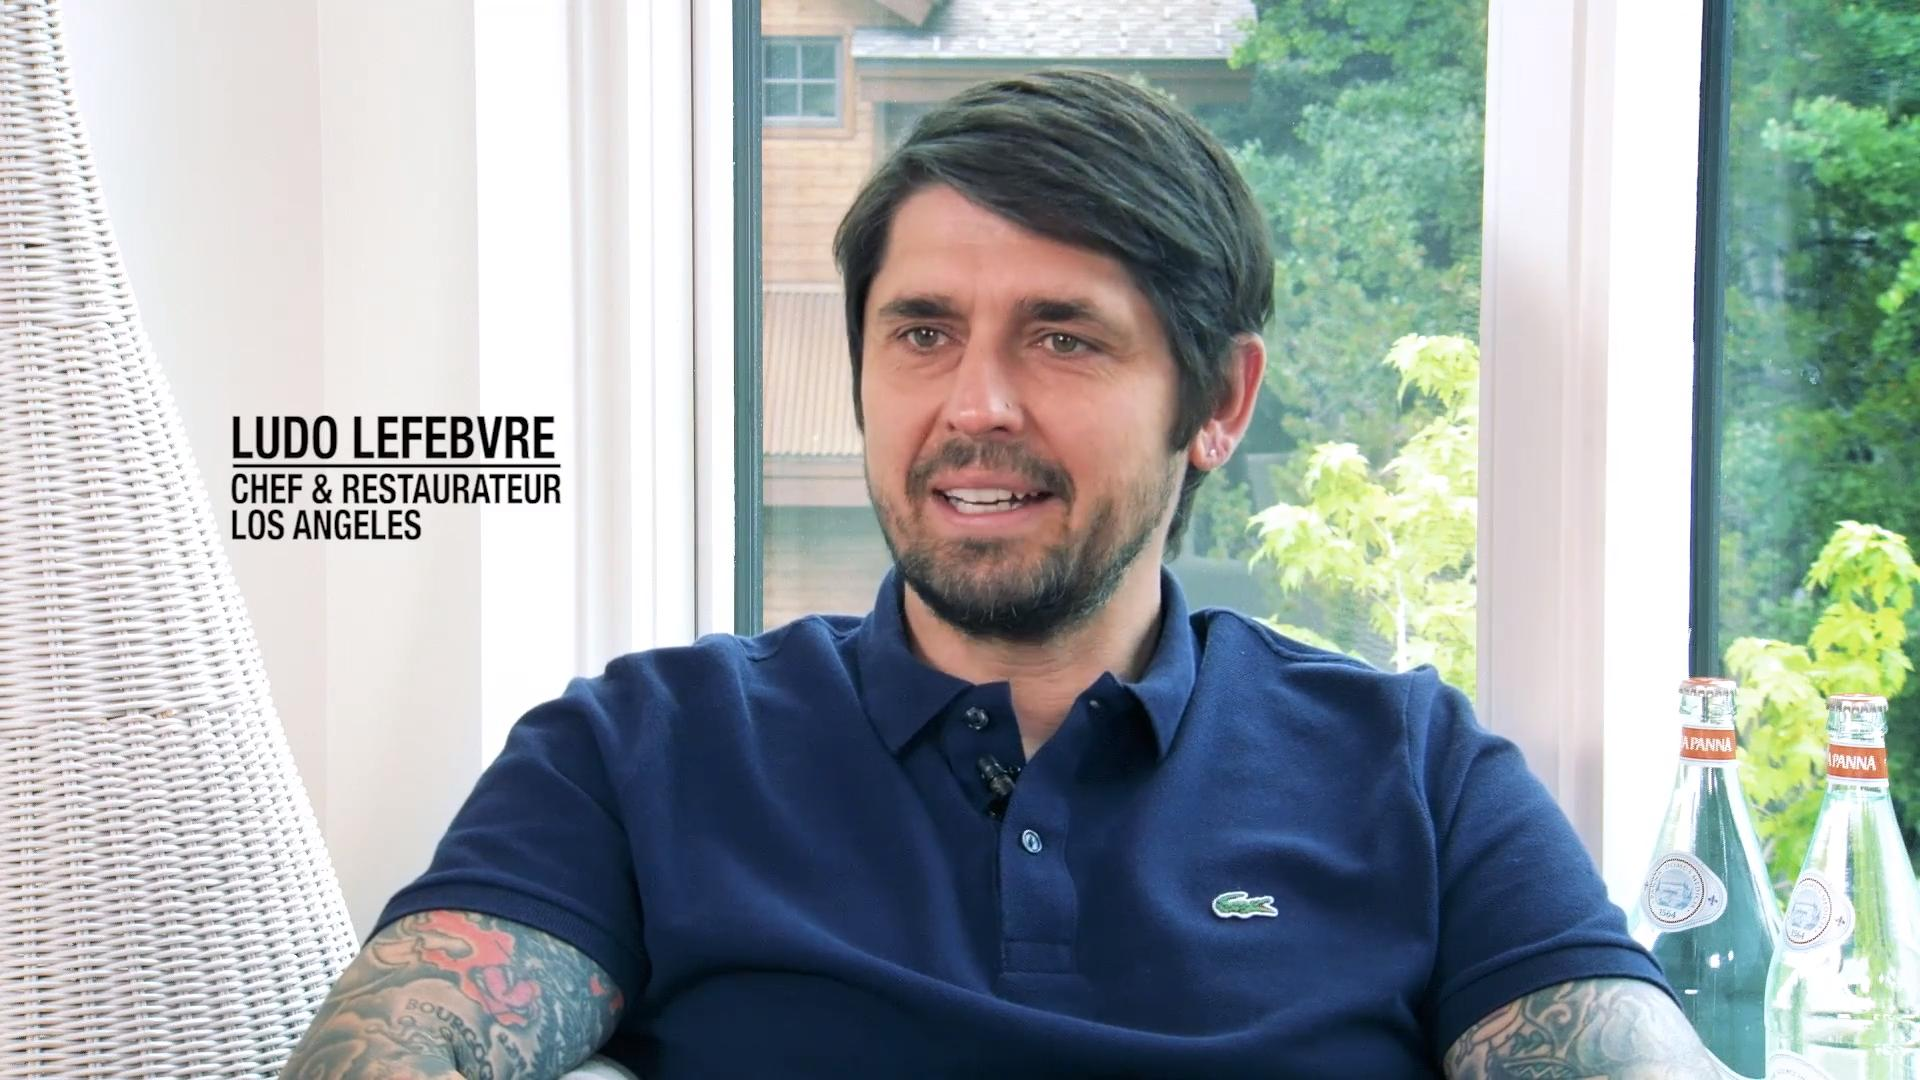 Ludo Lefebvre Interview: On Mentorship and the State of the Restaurant Industry Today